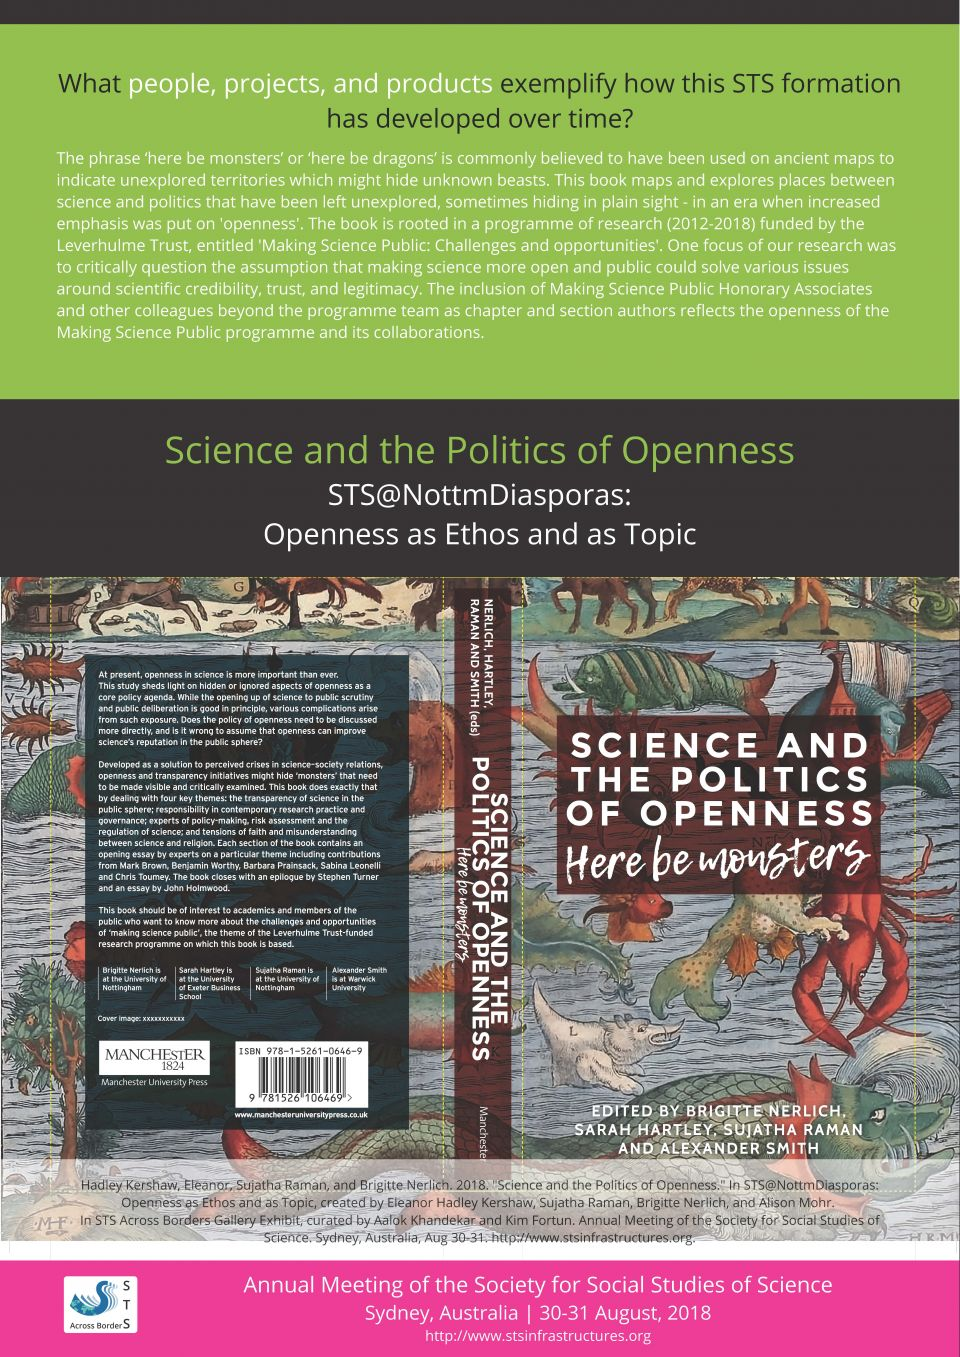 Science and the Politics of Openness